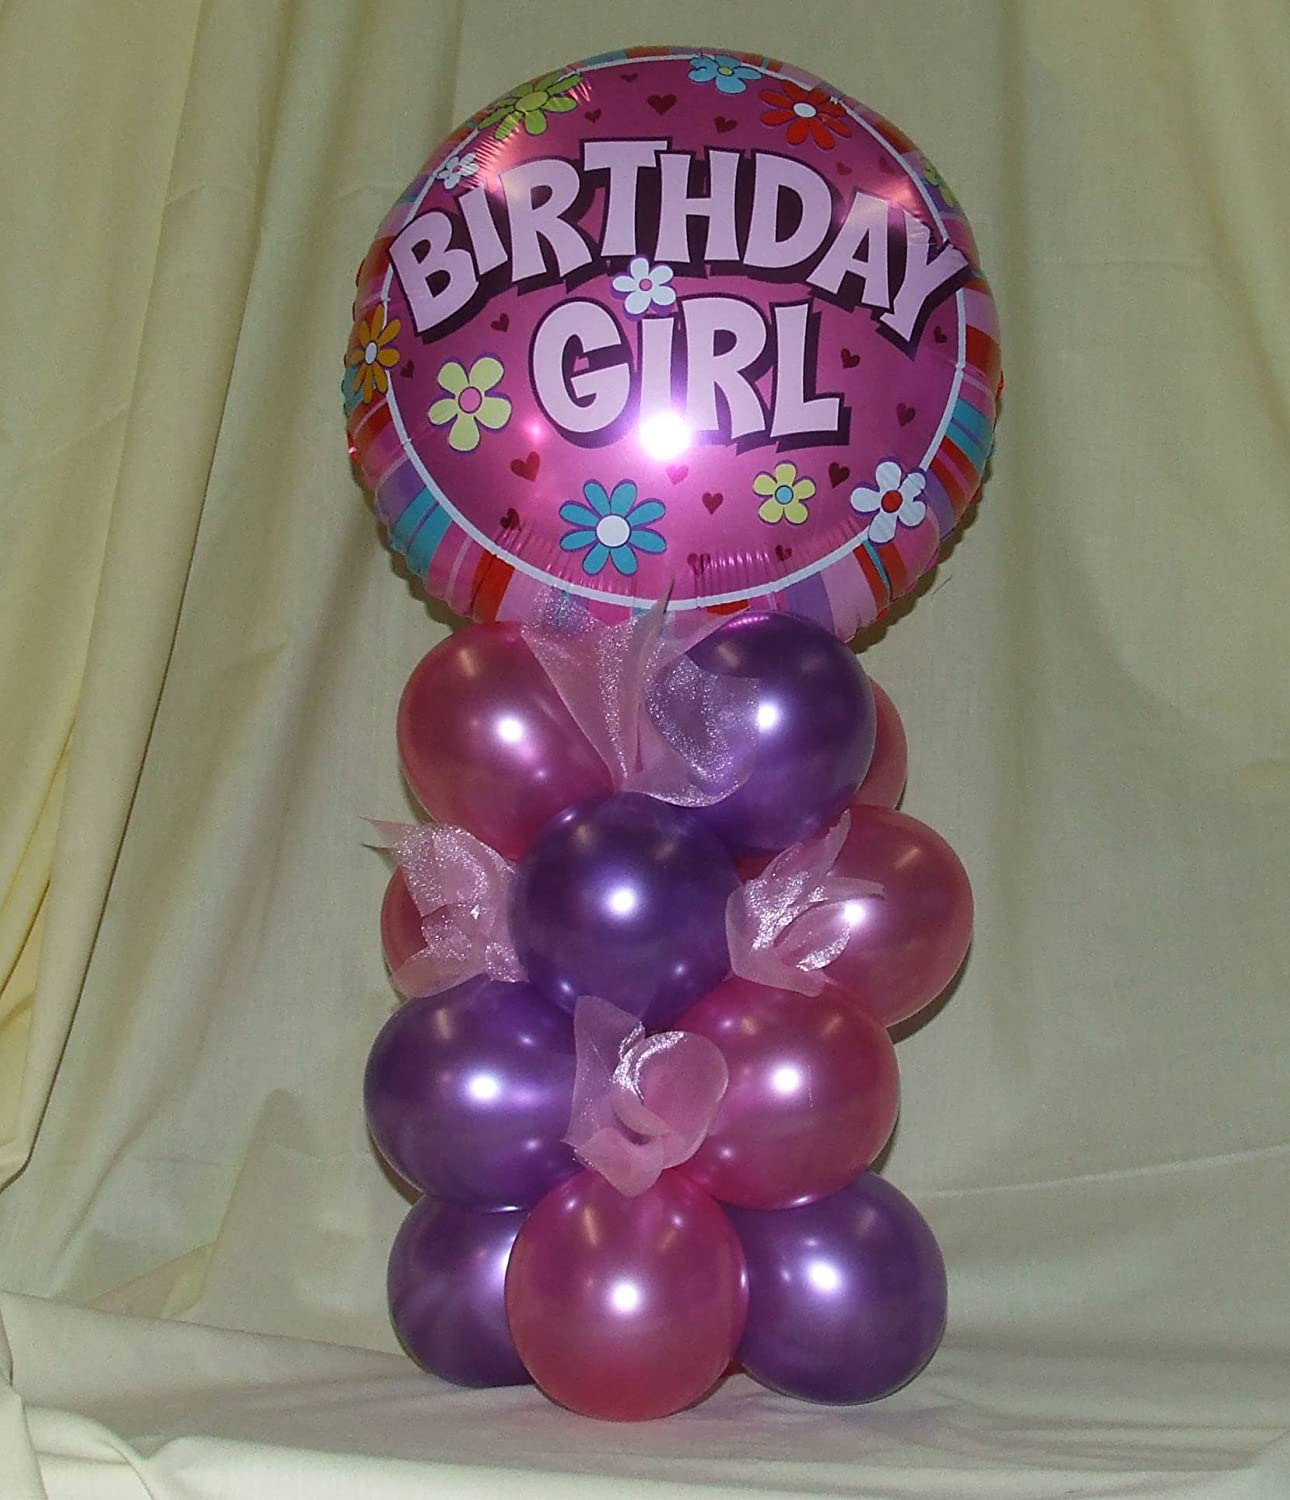 10 x CHRISTENING GIRL PINK BALLOONS PARTY DECORATIONS PA